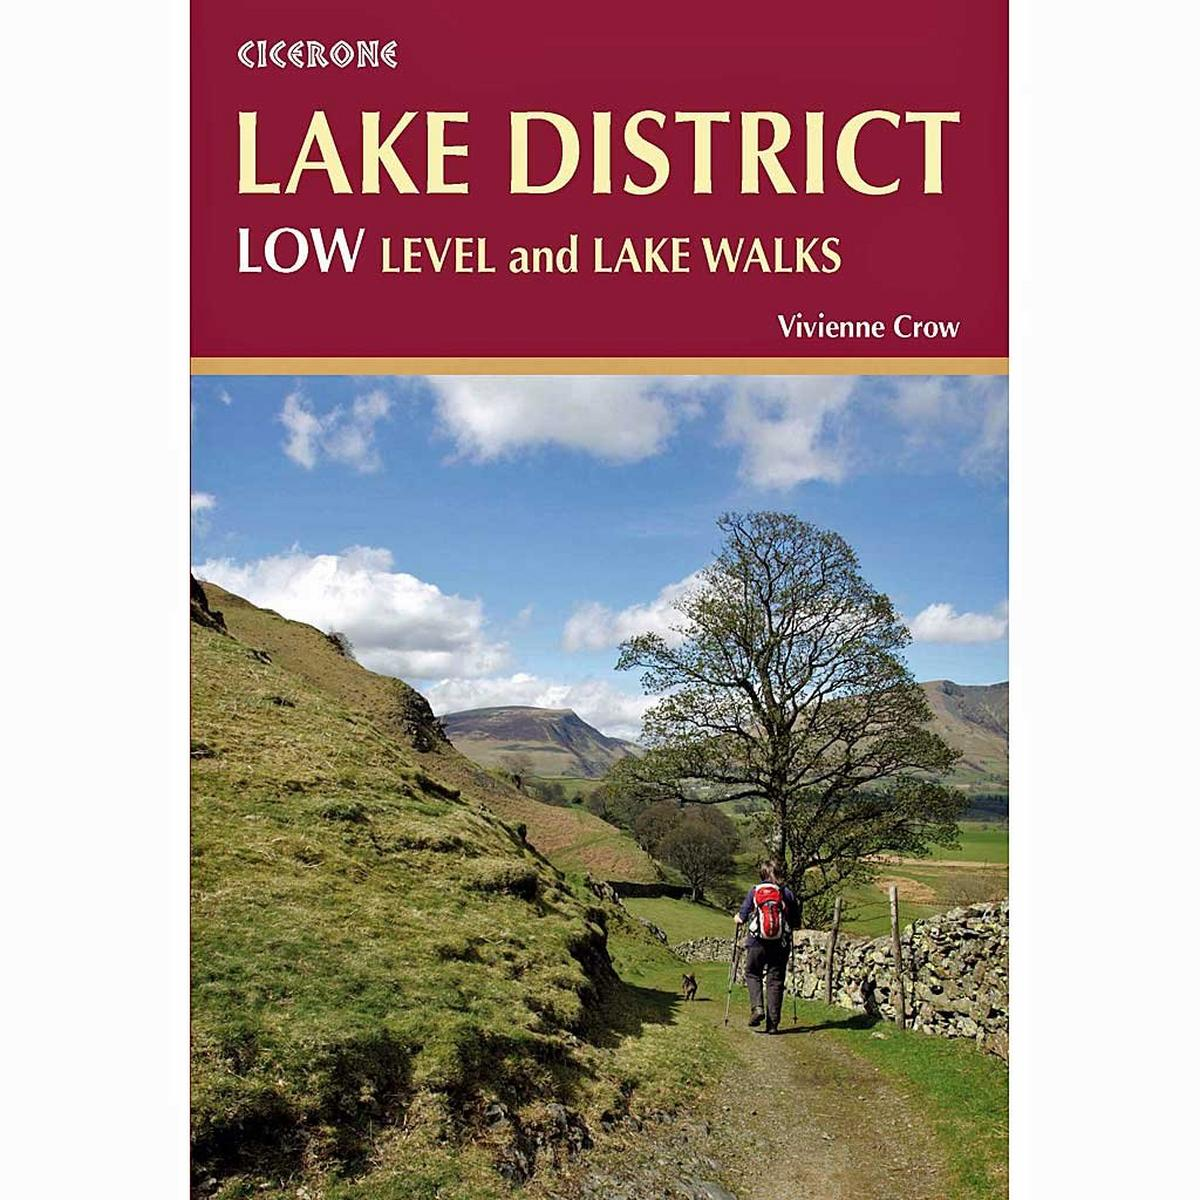 Cicerone Guide Book: Lake District: Low Level and Lake Walks